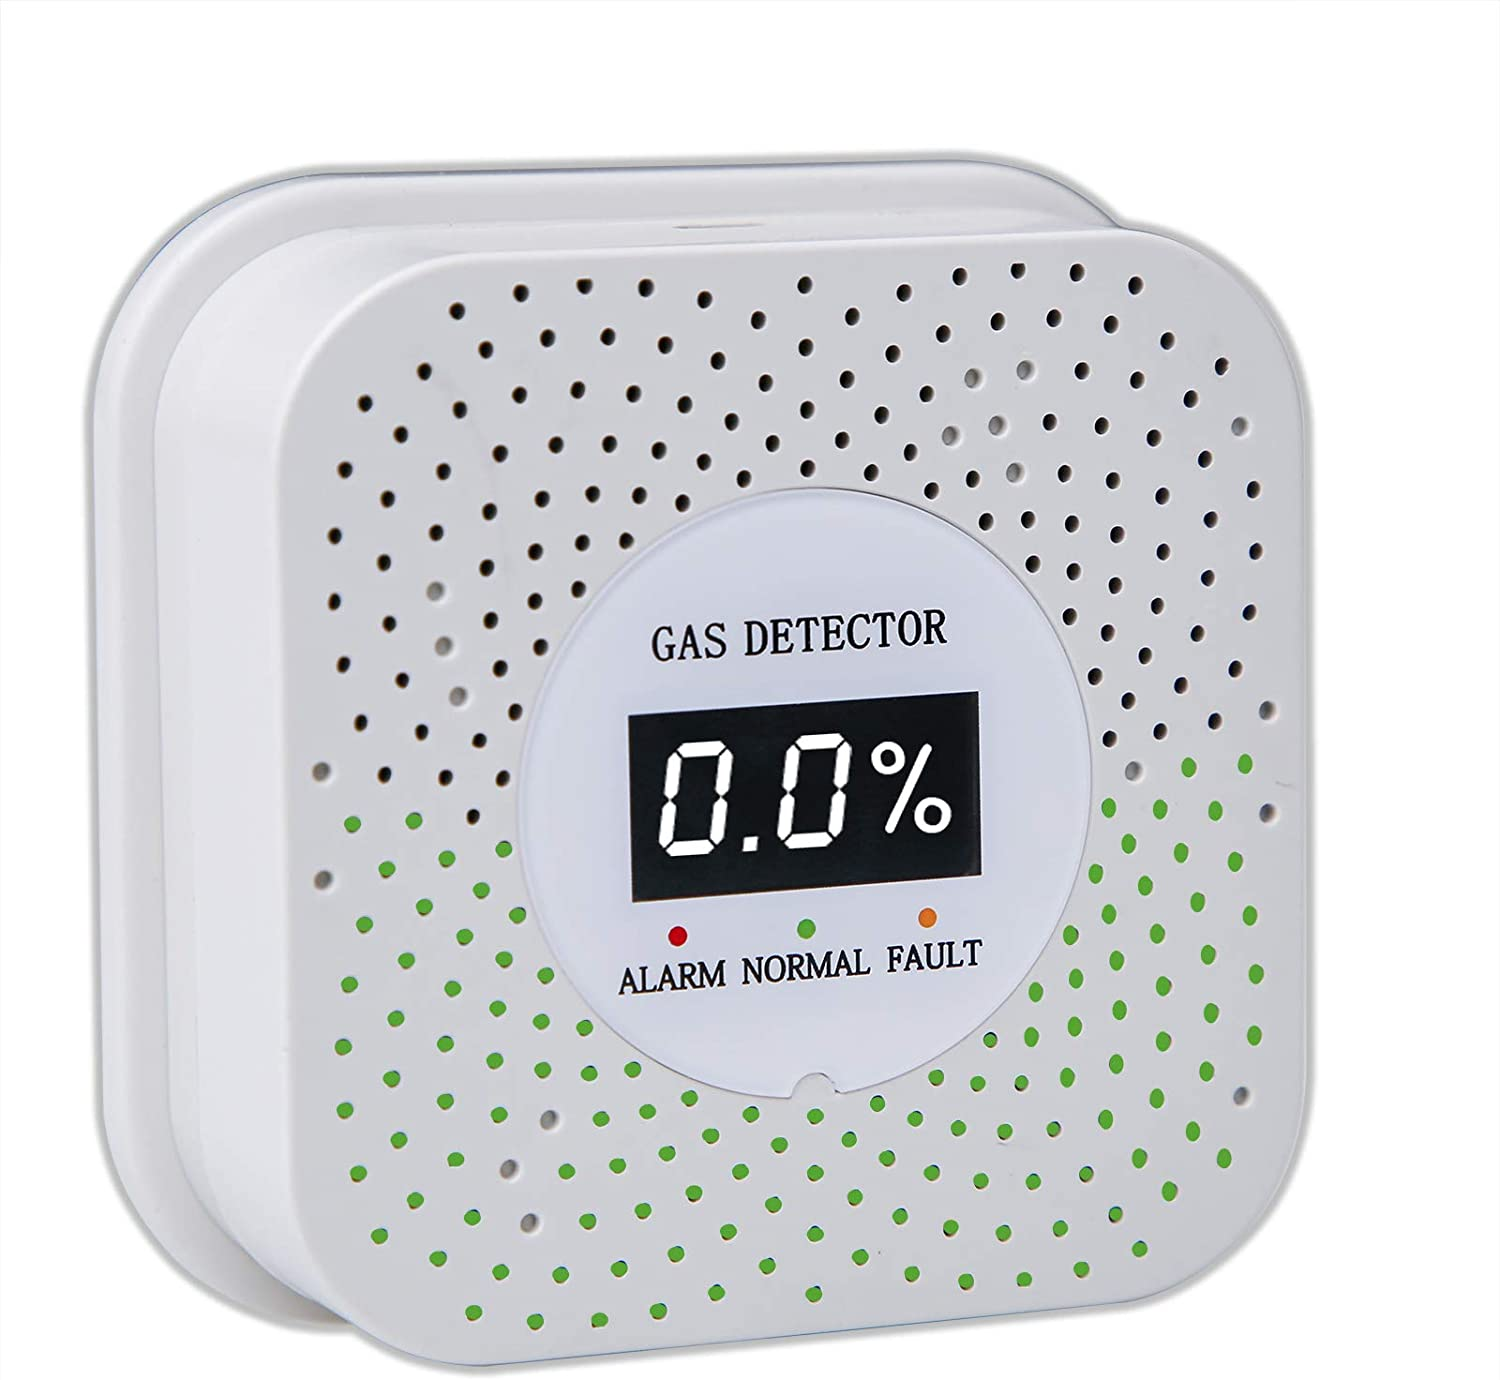 Natural/Propane Gas Detector, Gas Leak Detector with LCD Digital Real-time Display for Home and Kitchen Use, High Sensitivity Gas Alarm for LPG LNG